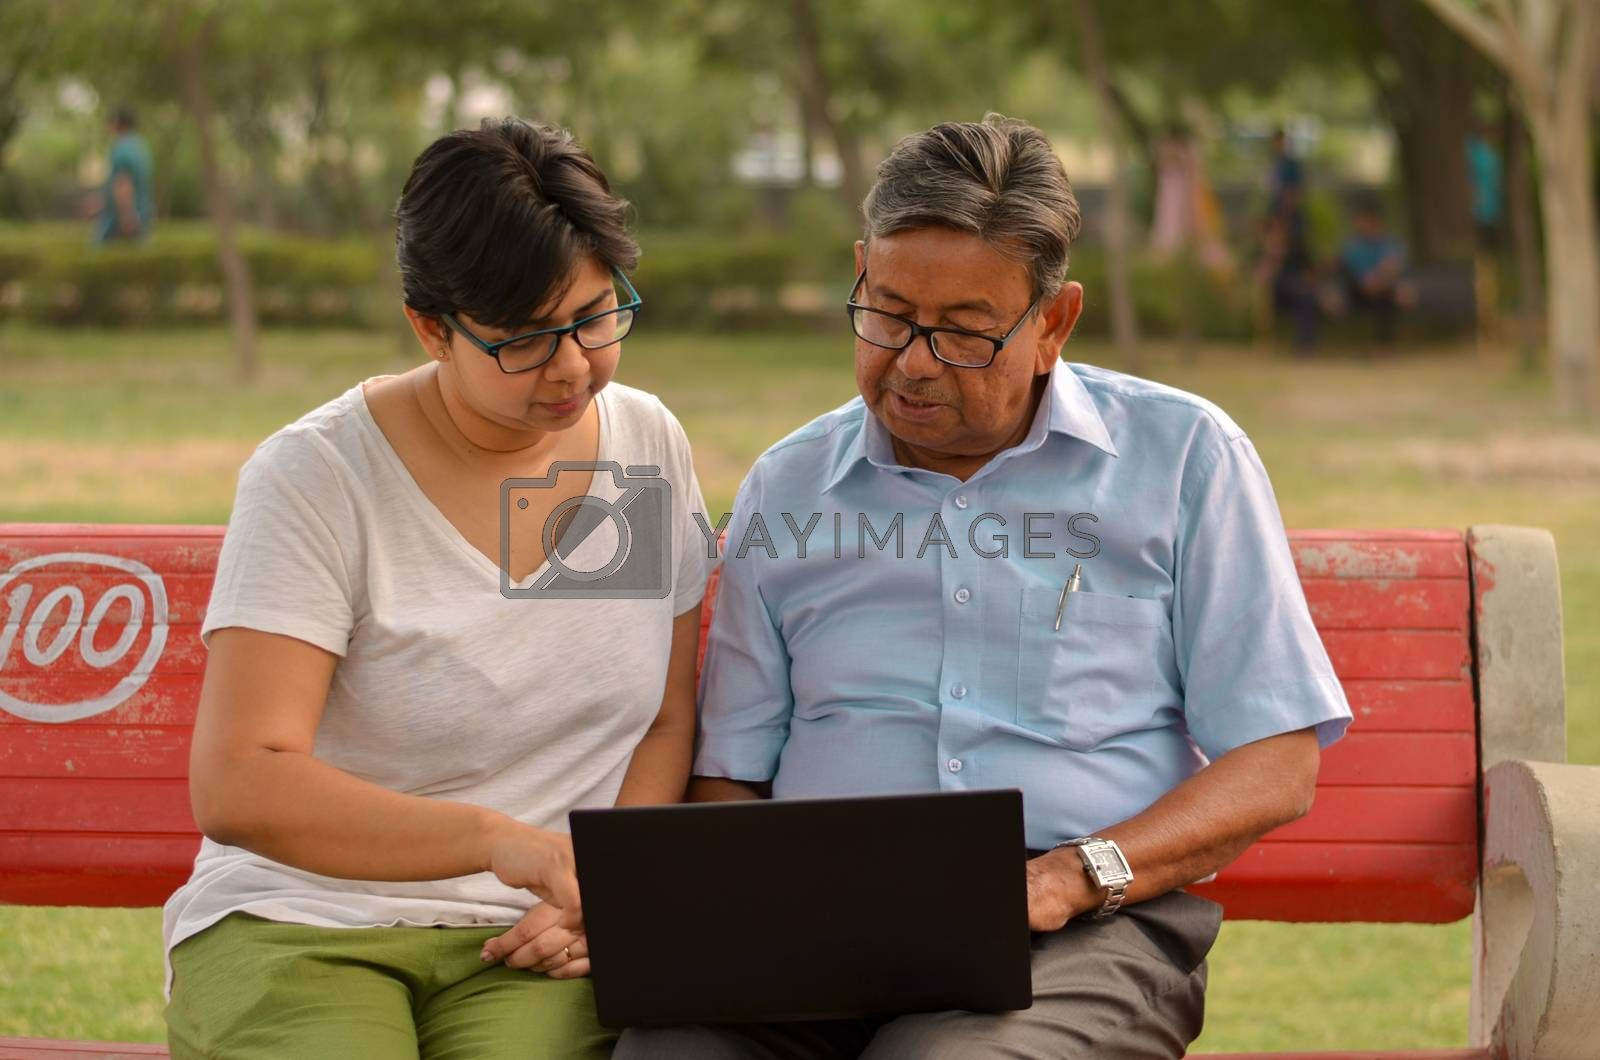 Young Indian woman manager in western formals / shirt helping old Indian man on a laptop promoting digital literacy for elderly in a park in New Delhi, India.Concept: father daughter/ Digital literacy